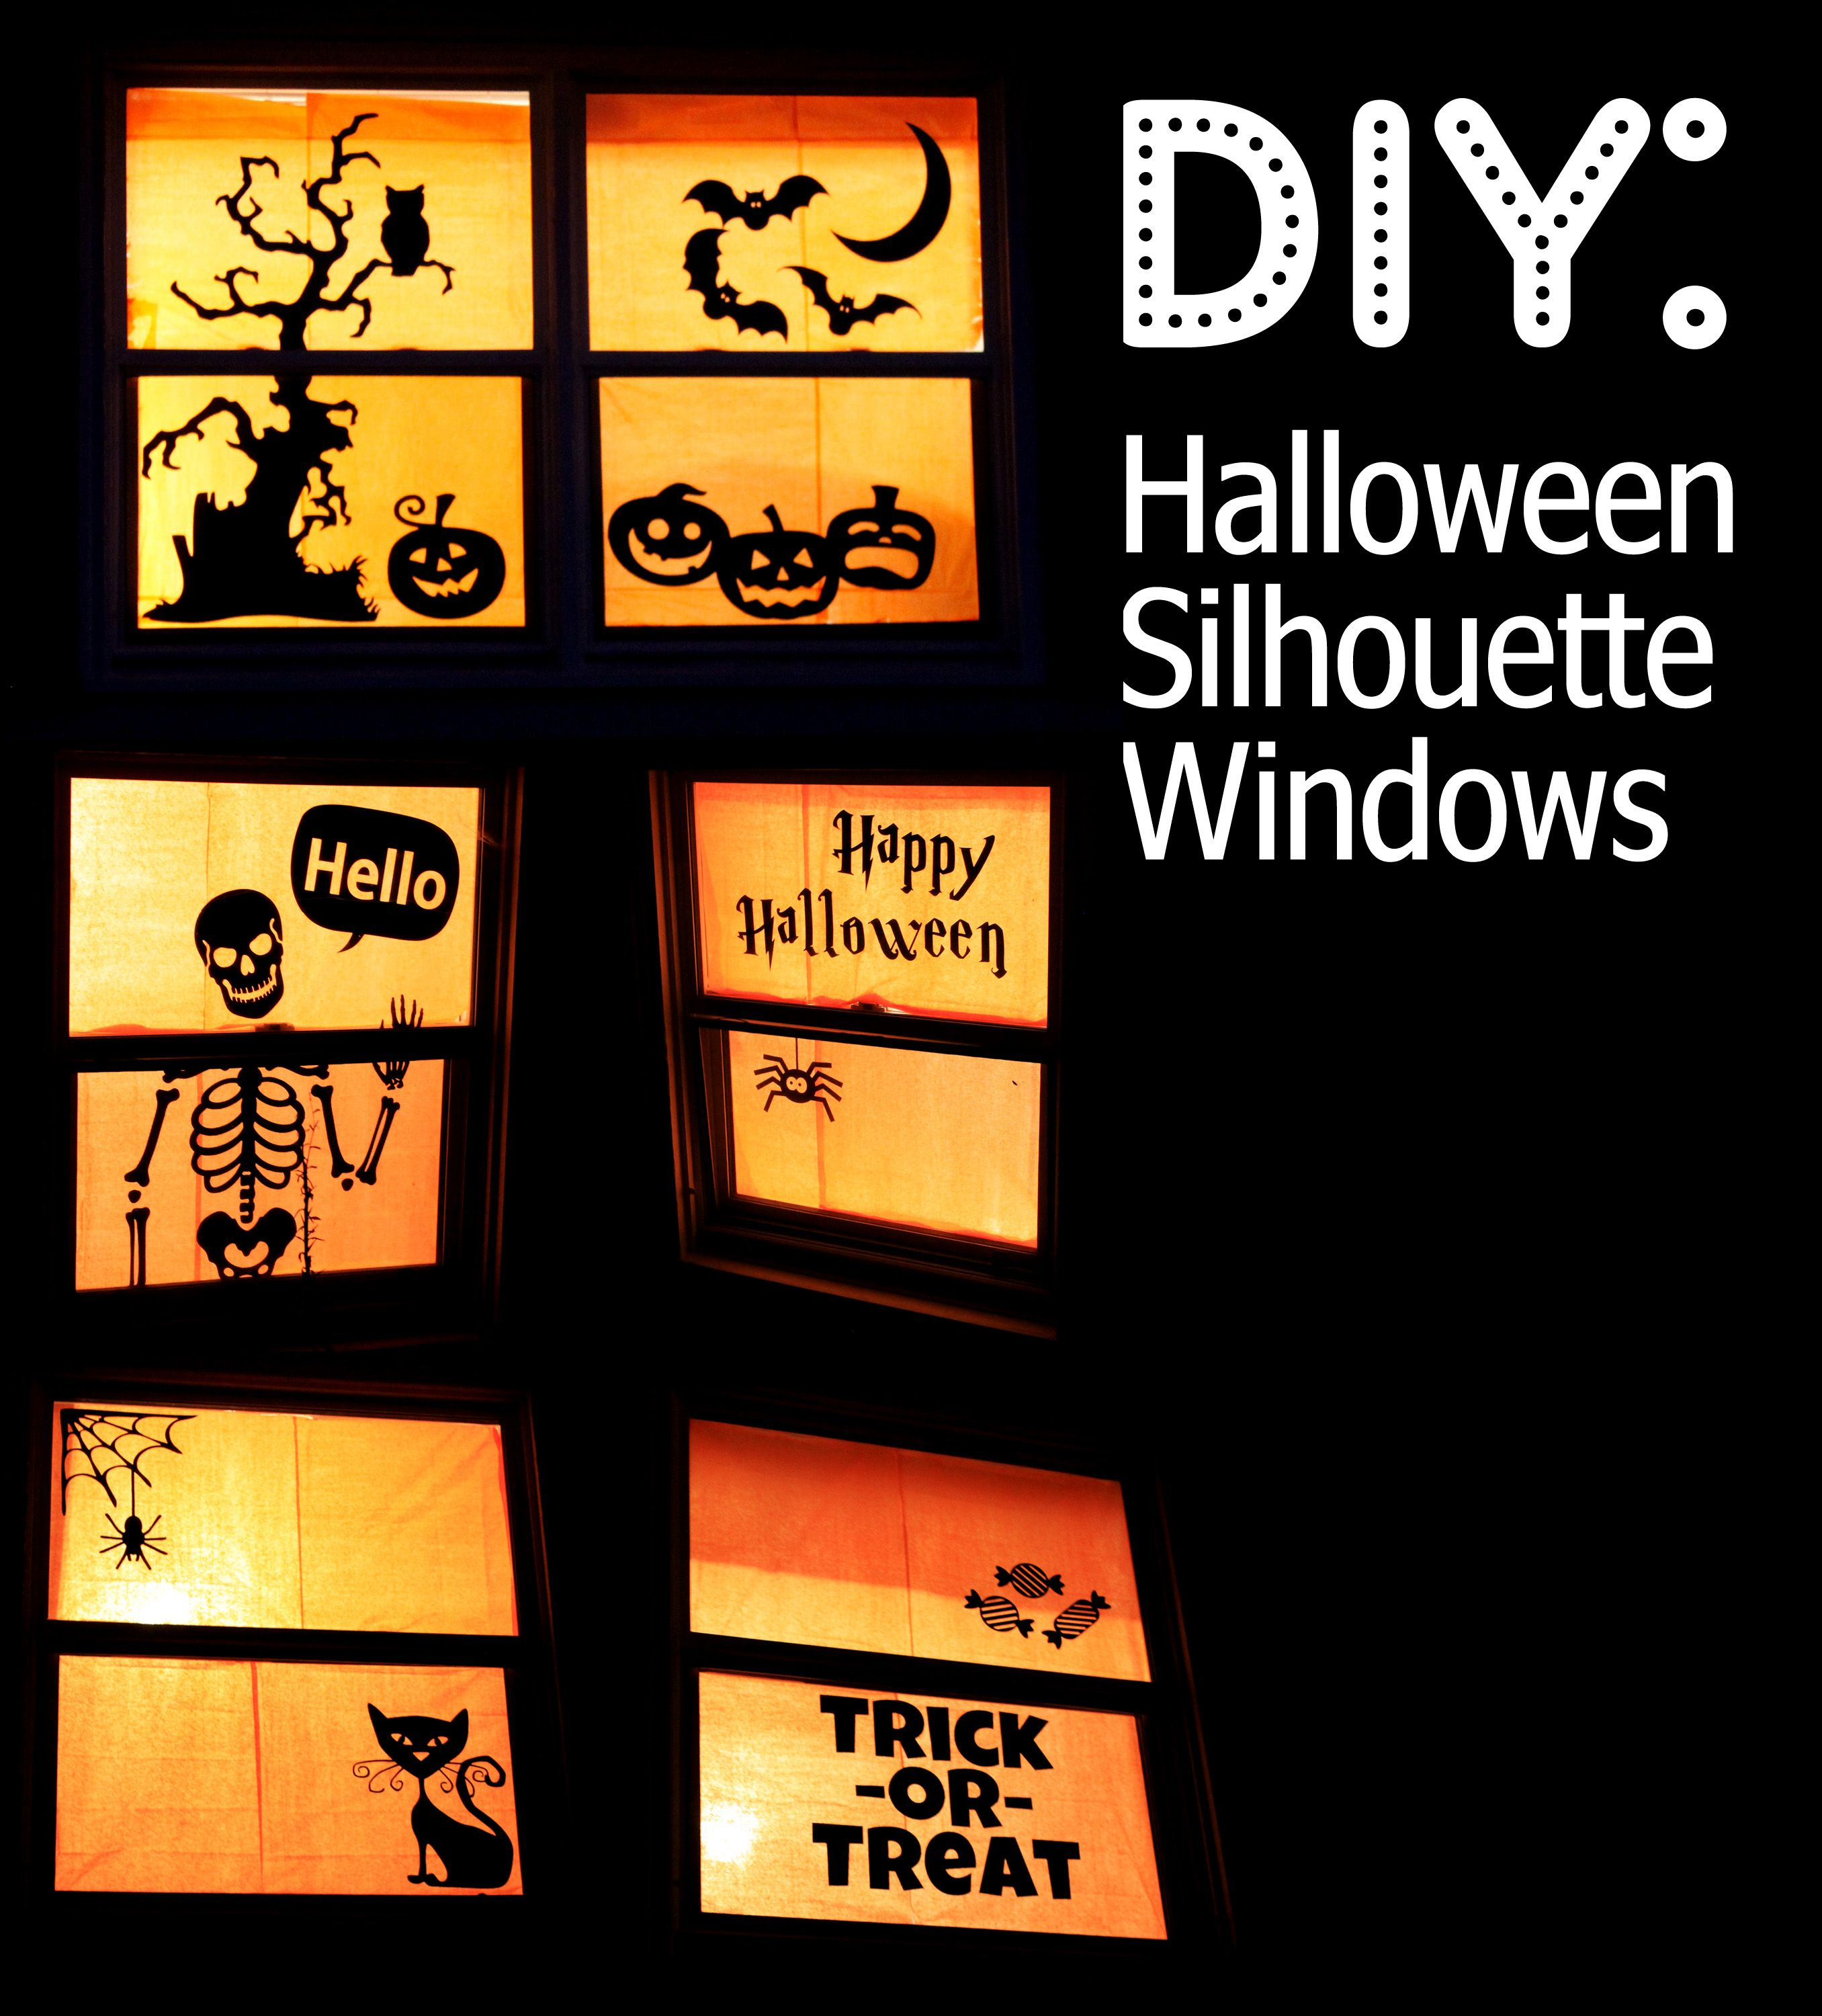 Outside Window Decorations Halloween Window Silhouettes Takes Around 2 Hours And Less Than 5